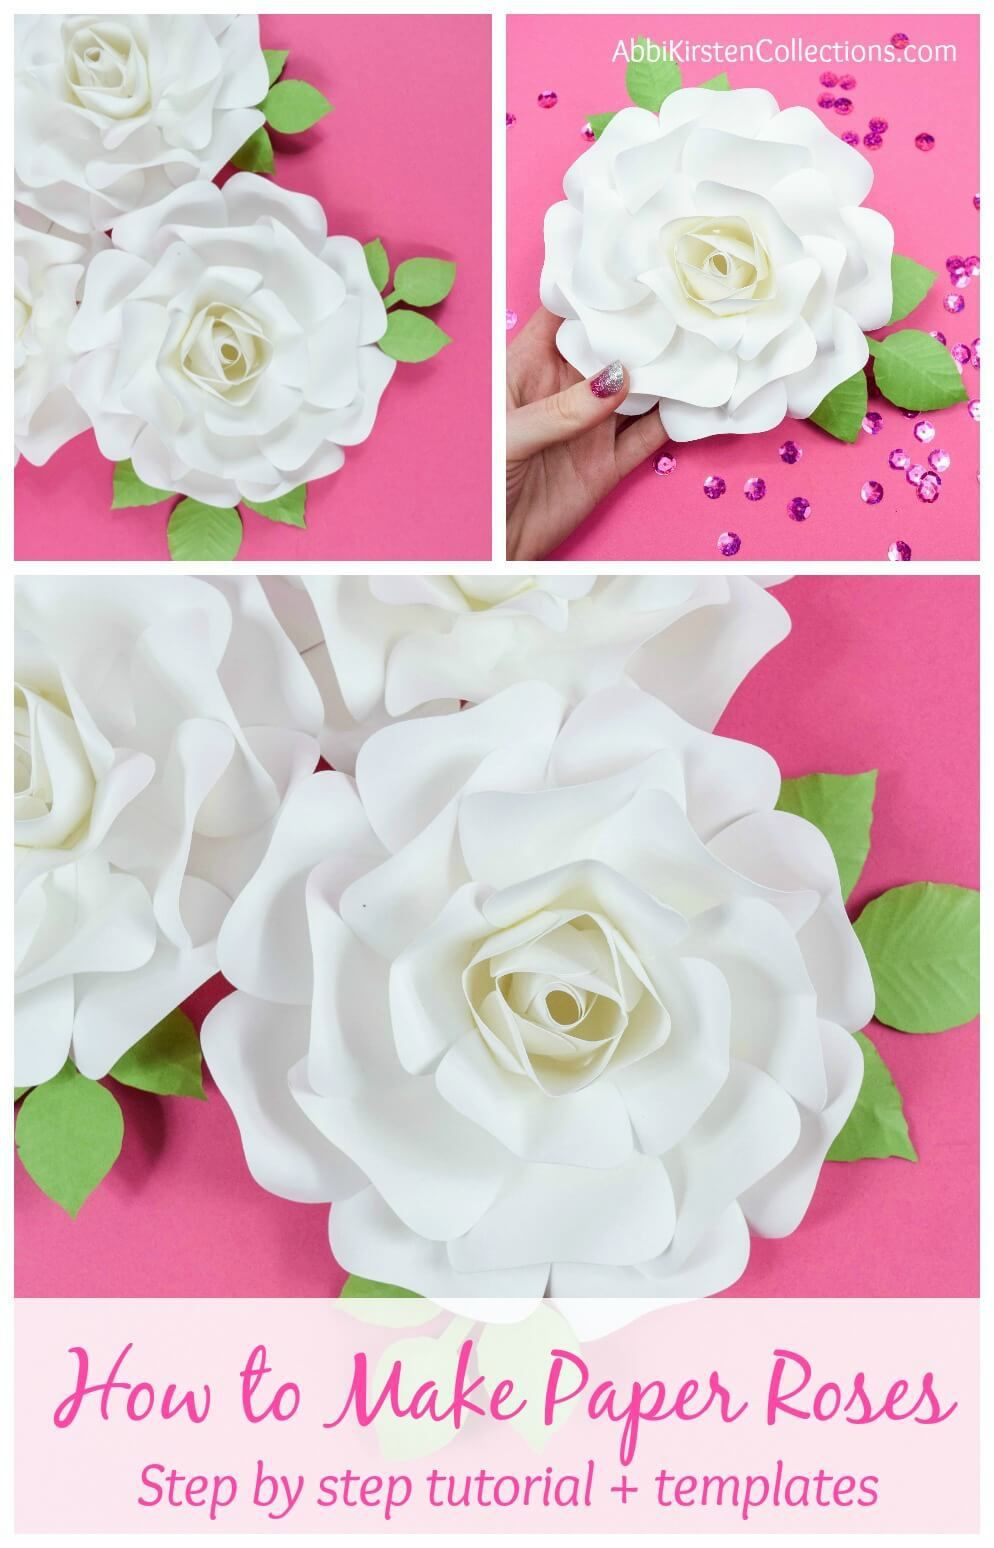 Diy Paper Rose Tutorial How To Make Small Paper Roses The Best